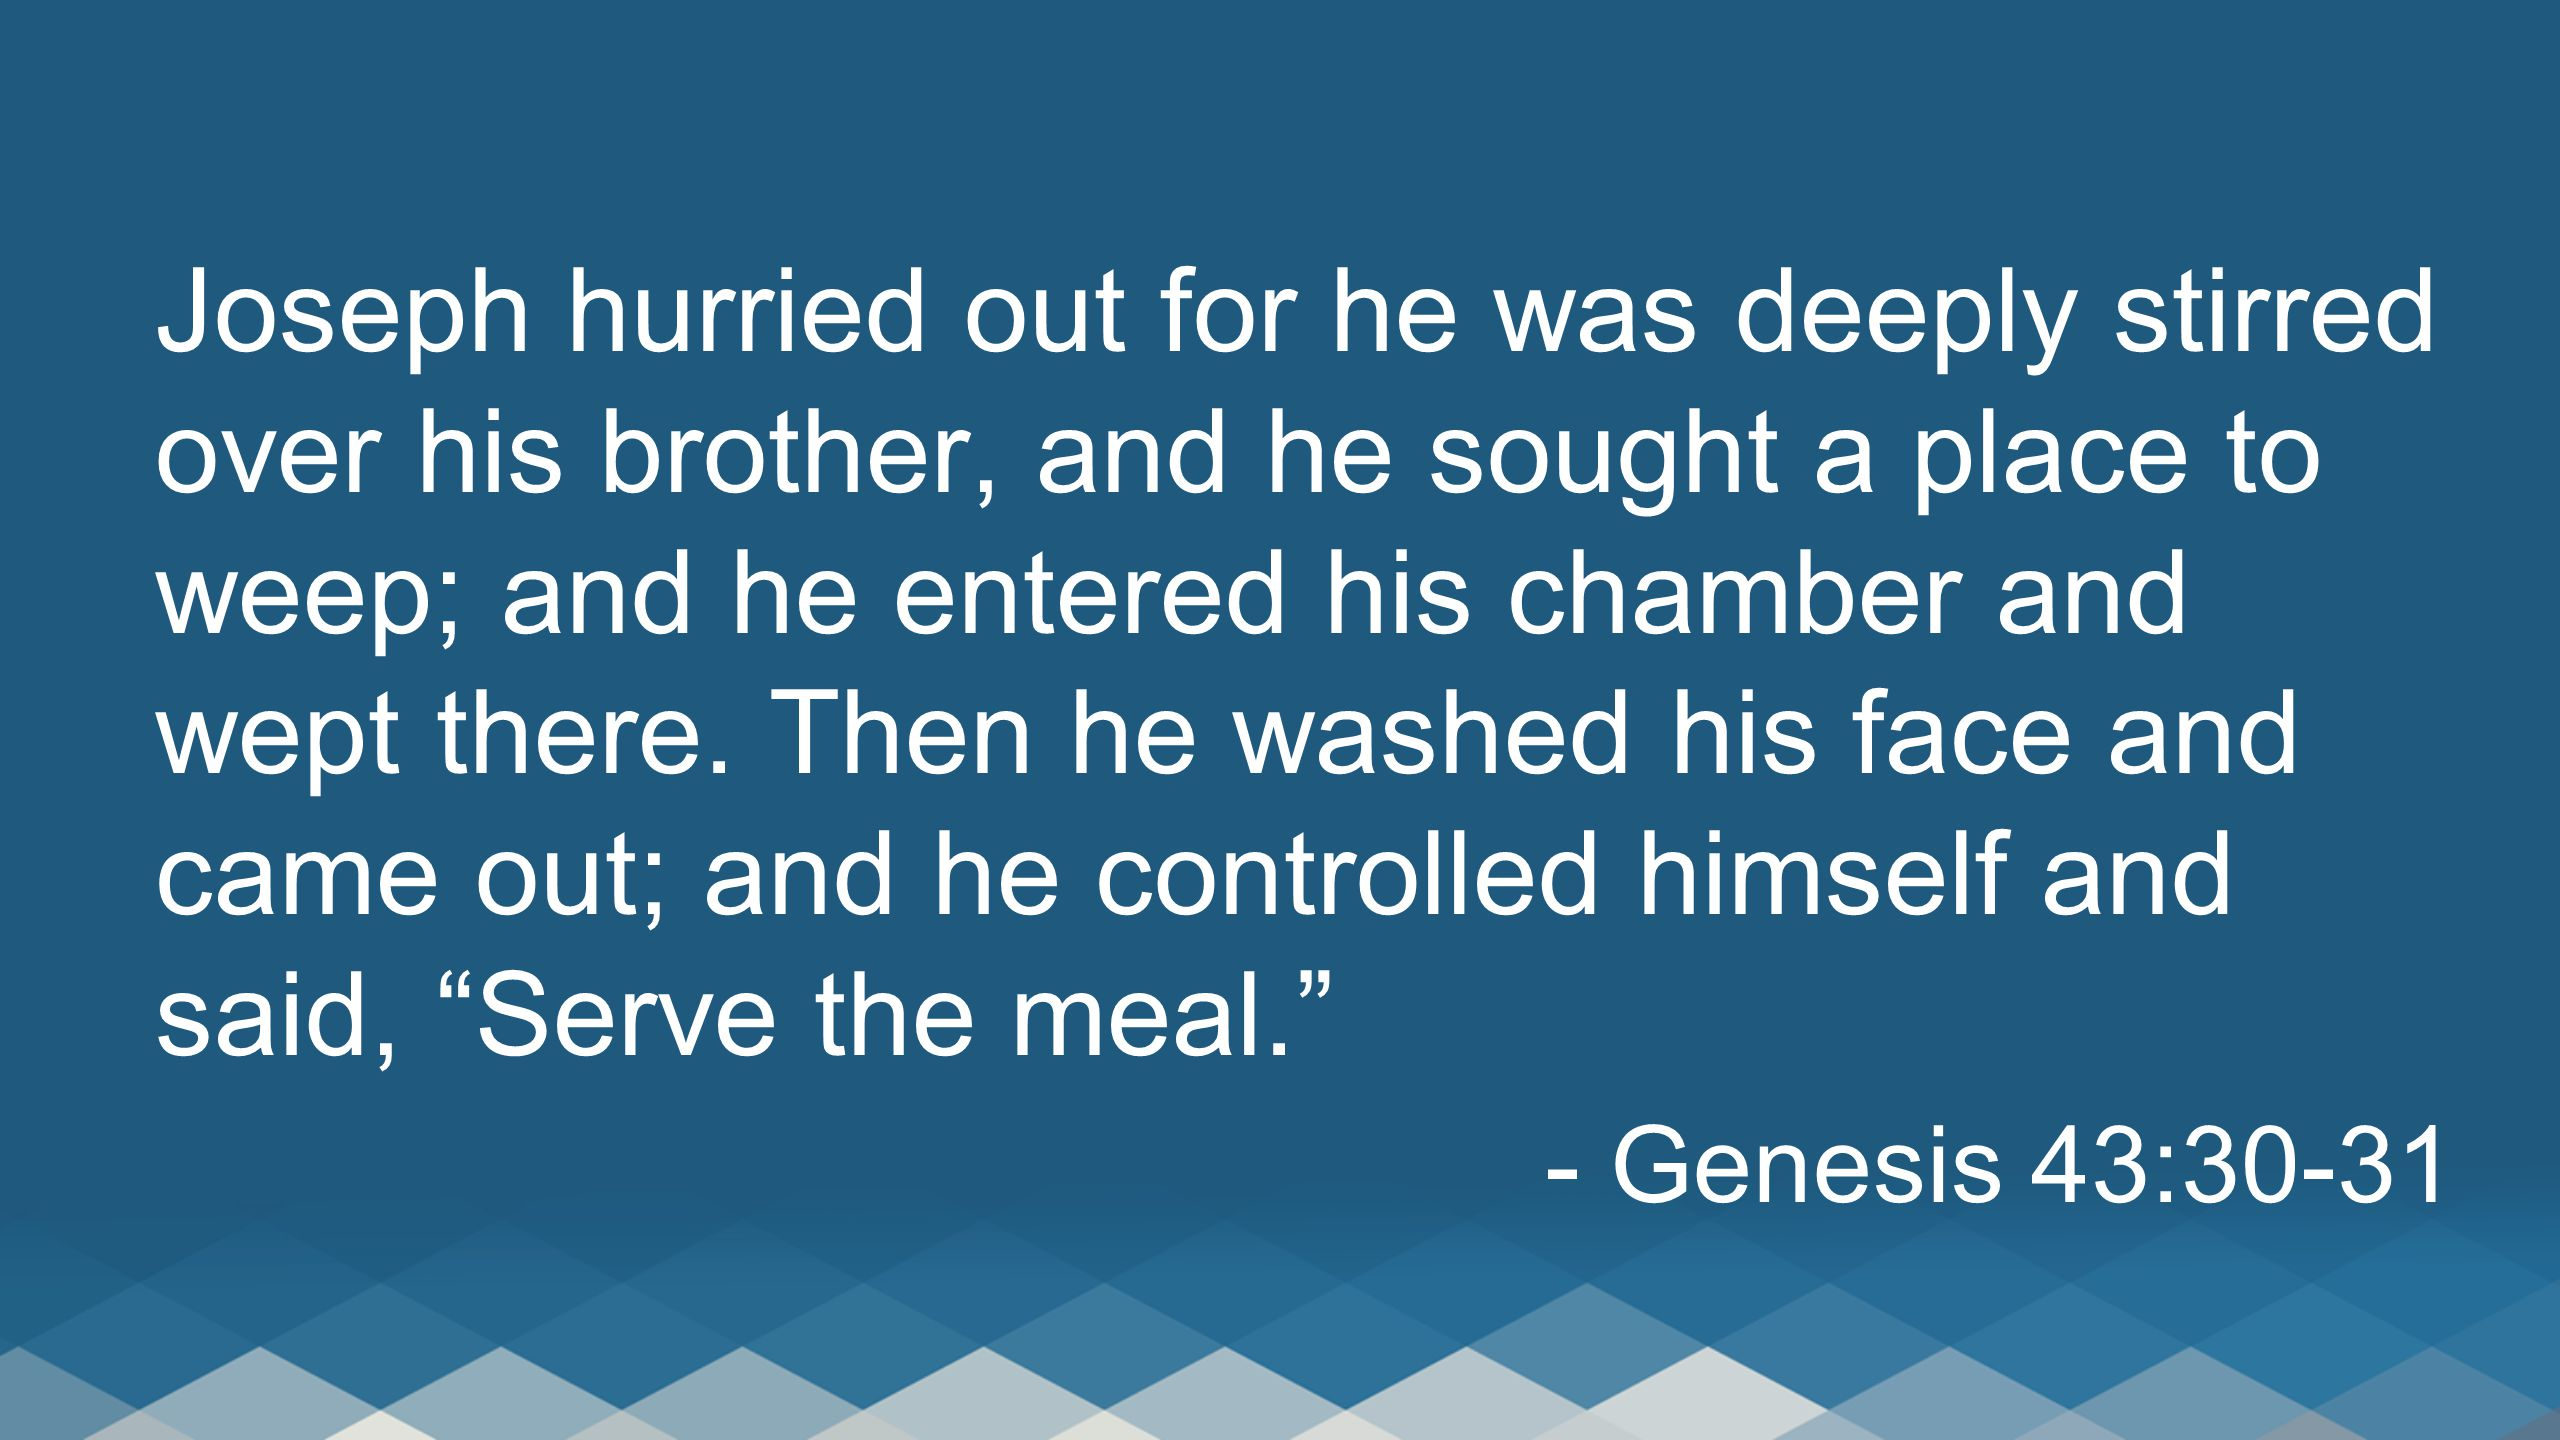 Joseph hurried out for he was deeply stirred over his brother, and he sought a place to weep; and he entered his chamber and wept there. Then he washed his face and came out; and he controlled himself and said, Serve the meal.